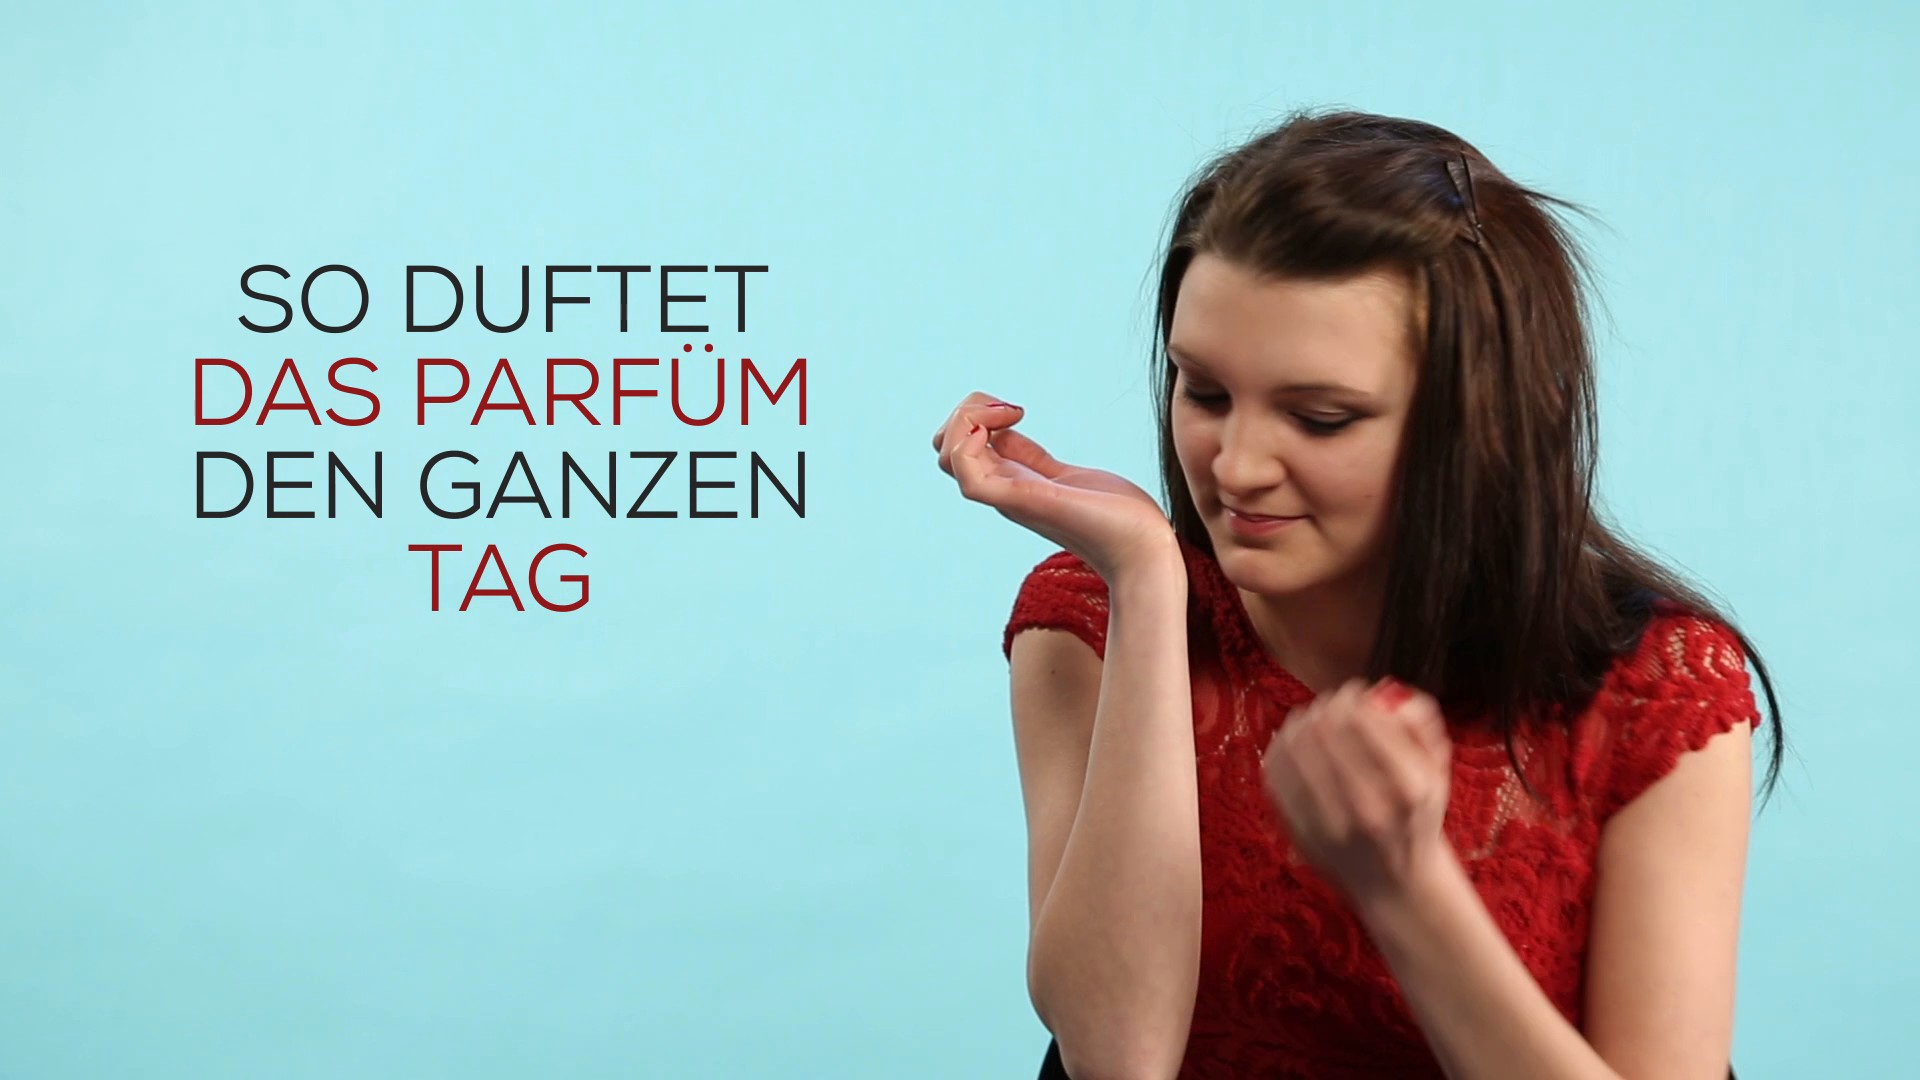 So duftet das parfum_EL.mp4: image 0